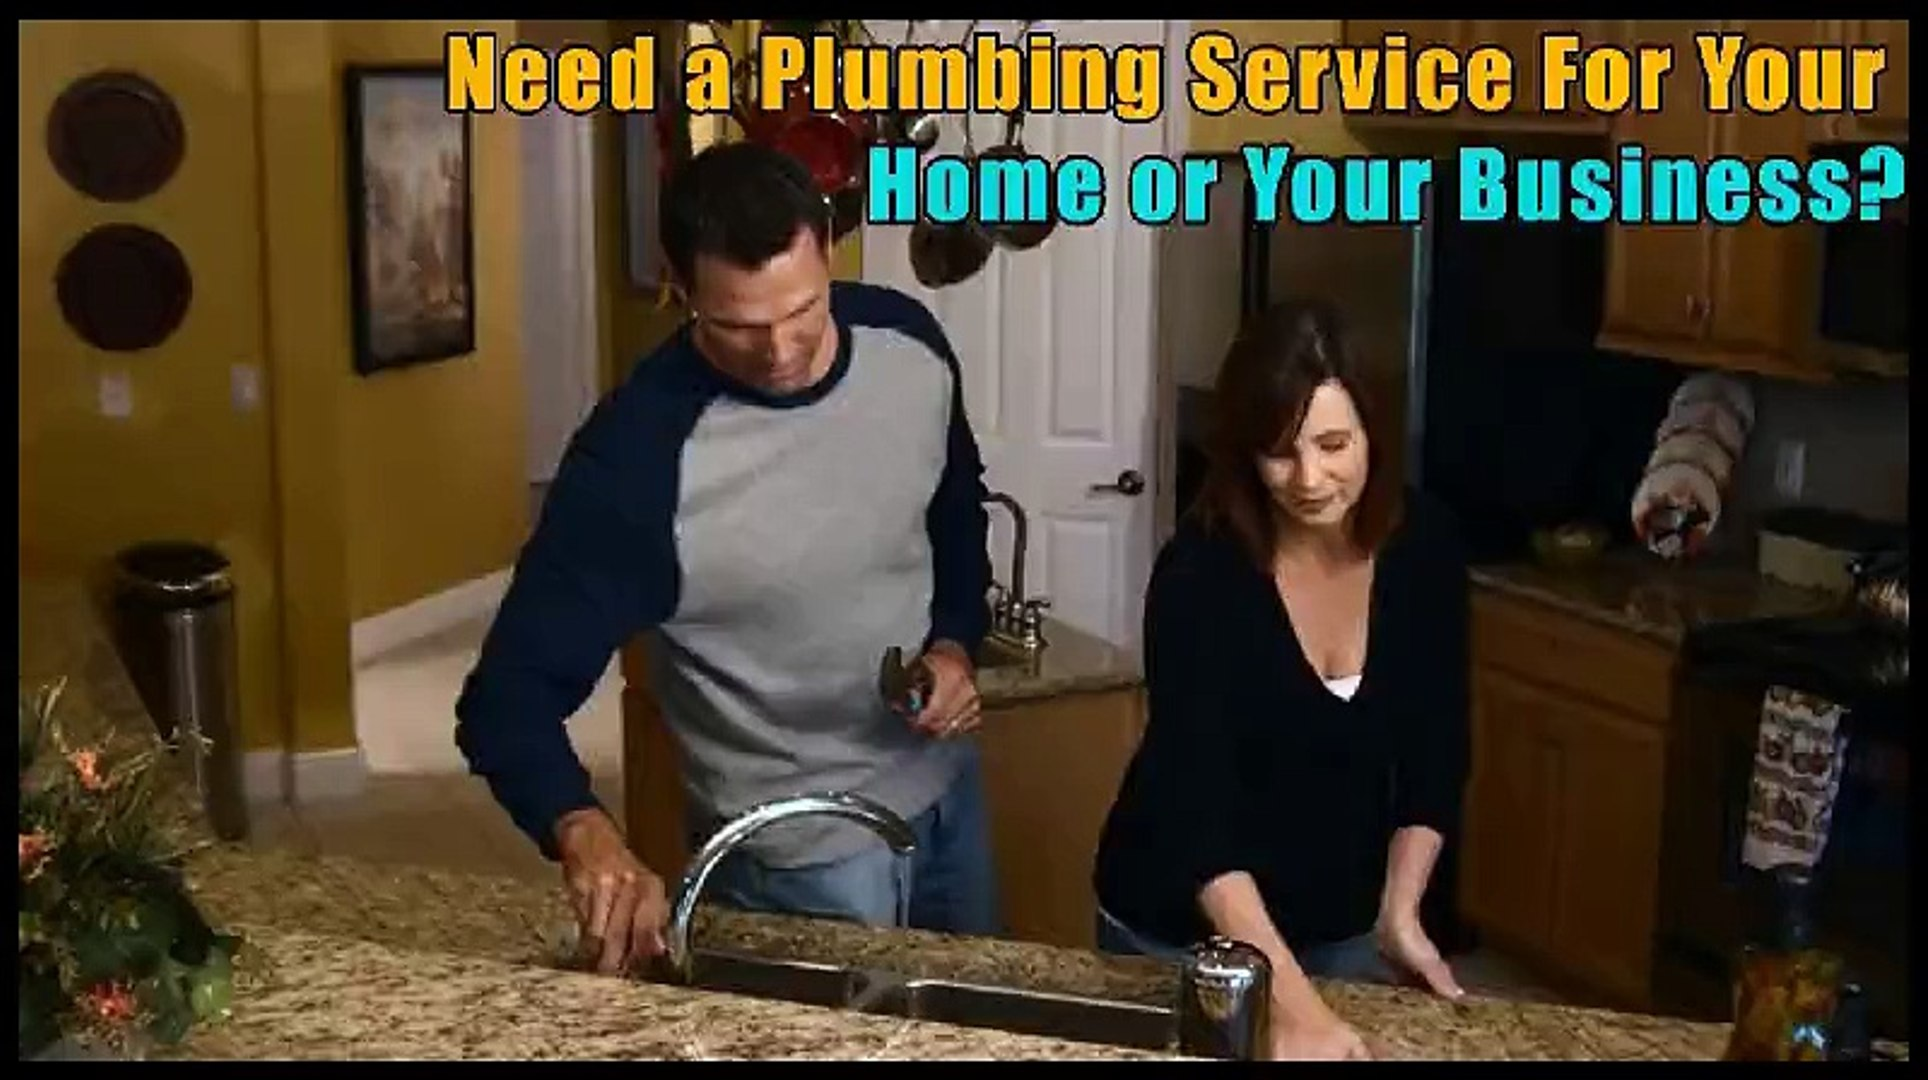 Best Local Plumber in Morrisville NC | 1-855-528-6641 | Plumbing Services Near Me